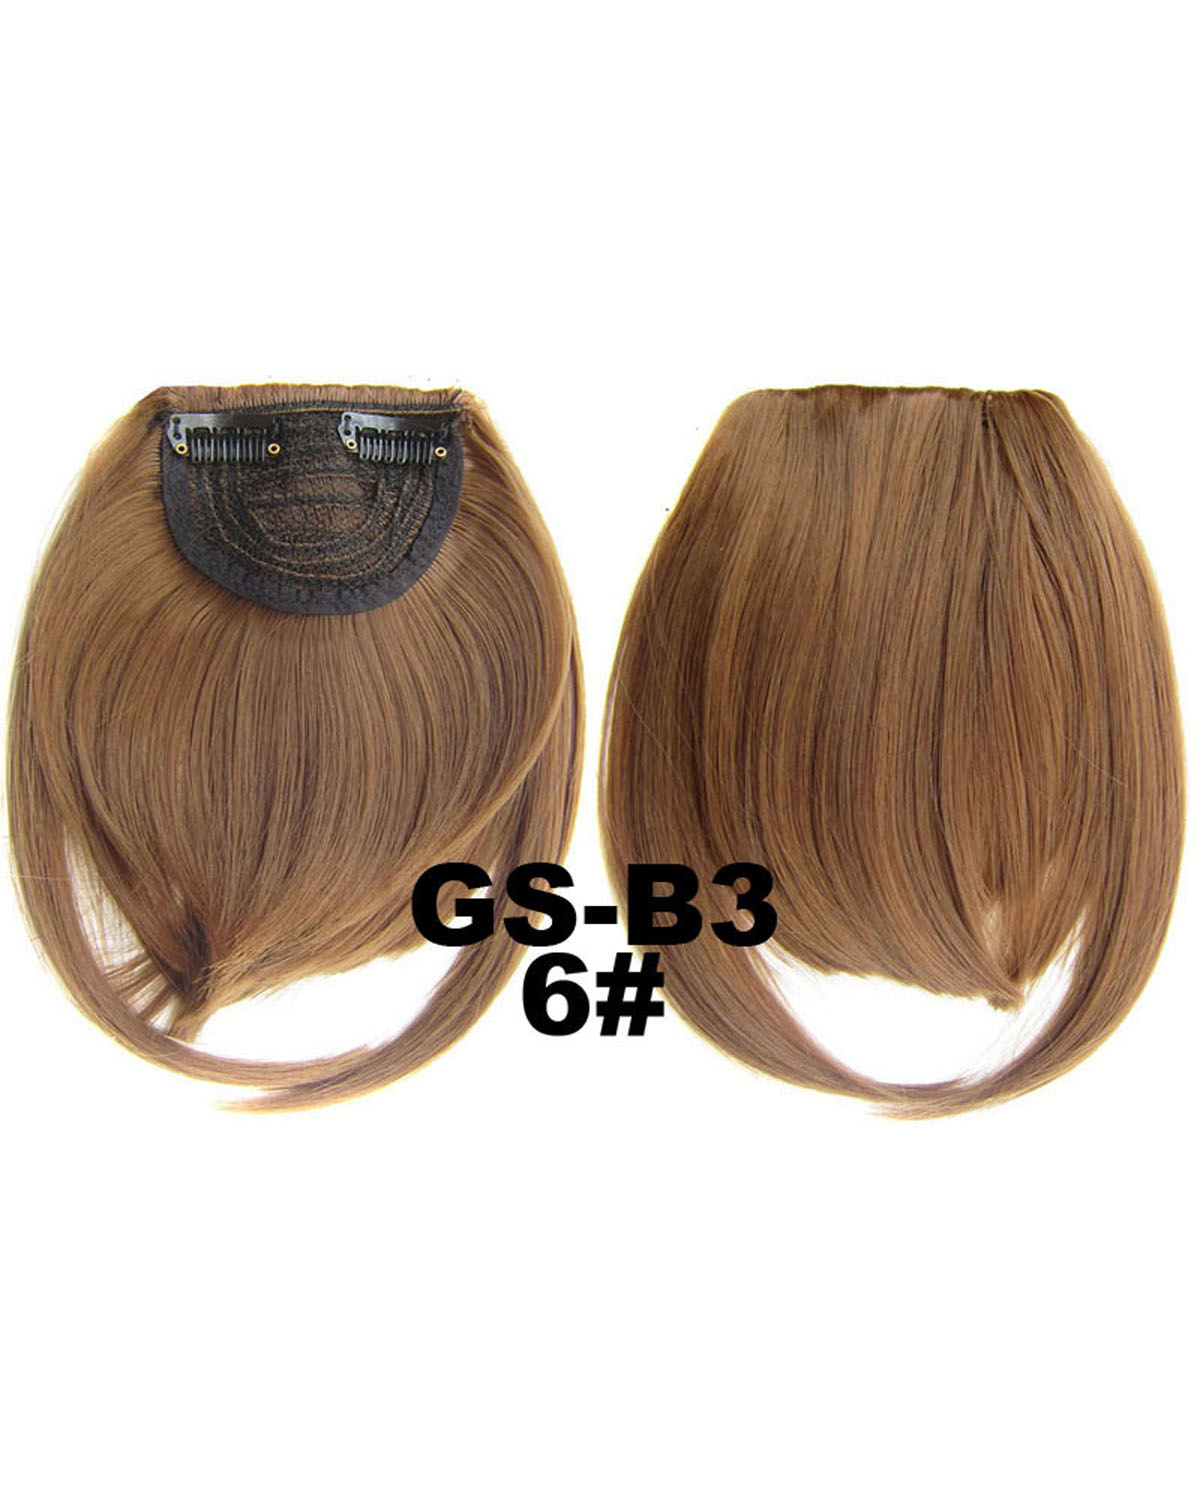 Girls Hot-sale Straight Short Bangs Clip in Synthetic Hair Extension Fringe Bangs Hairpiece  6#